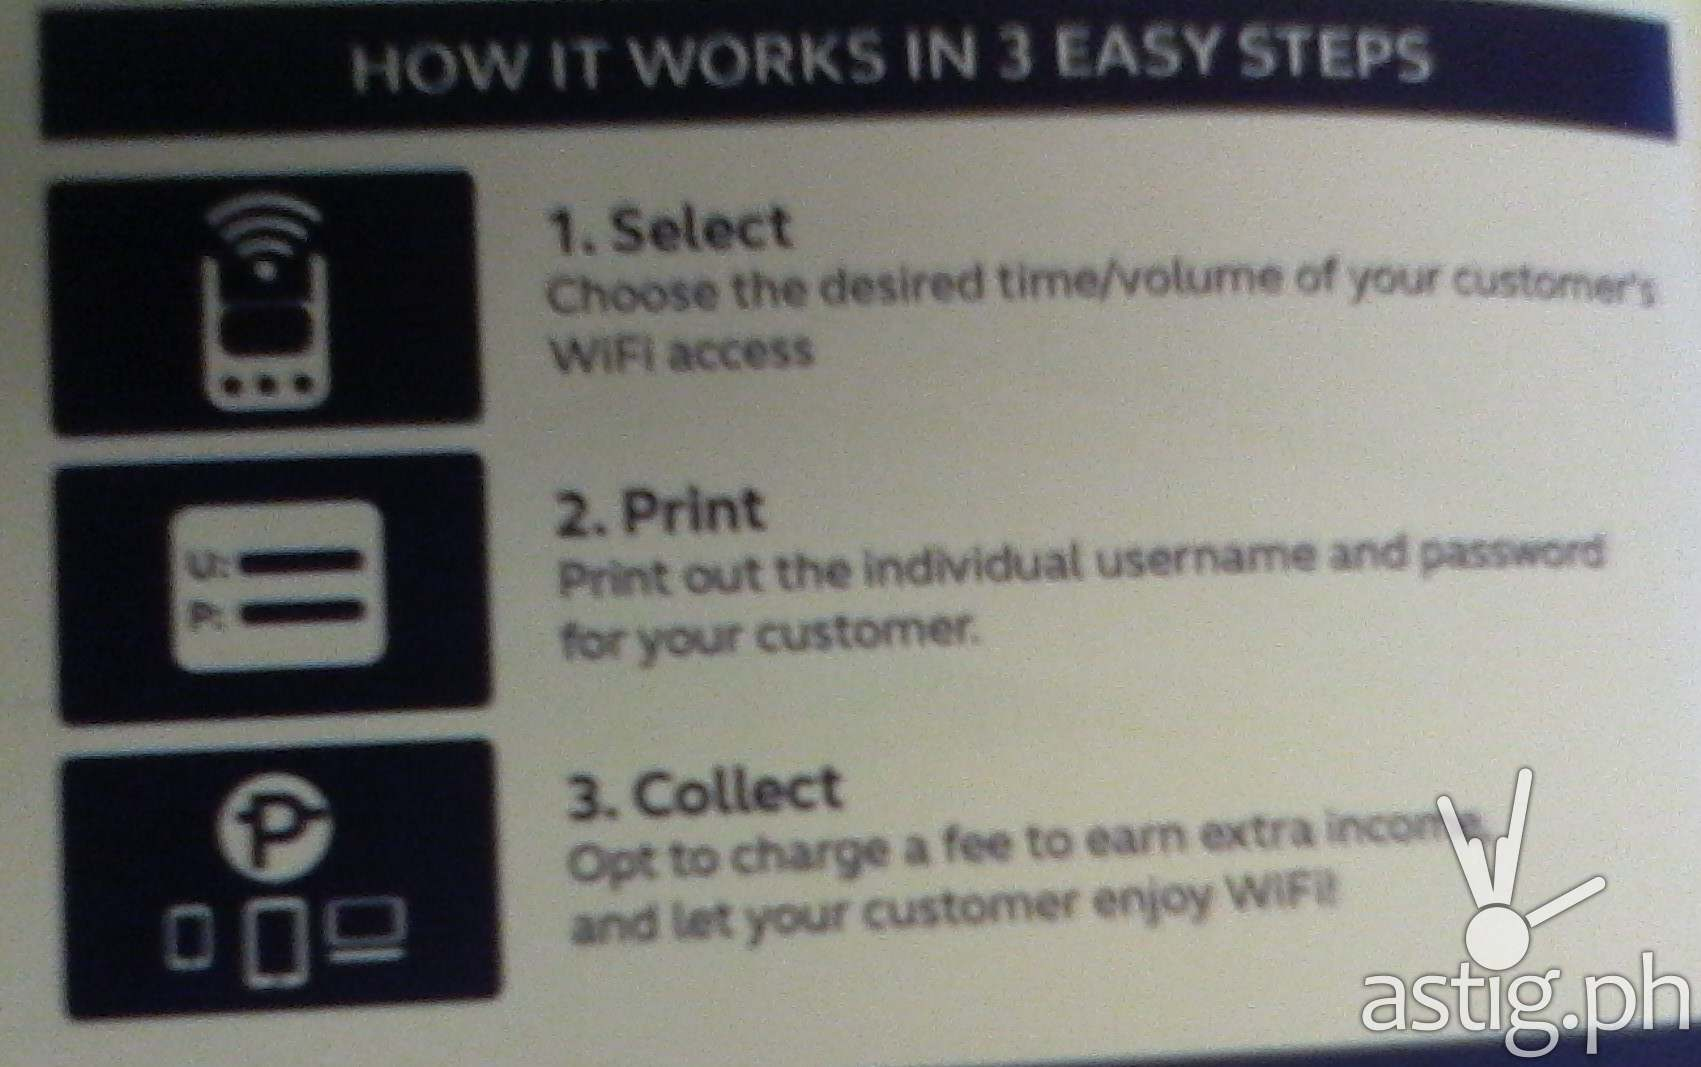 New Globe product lets business owners offer WiFi to their